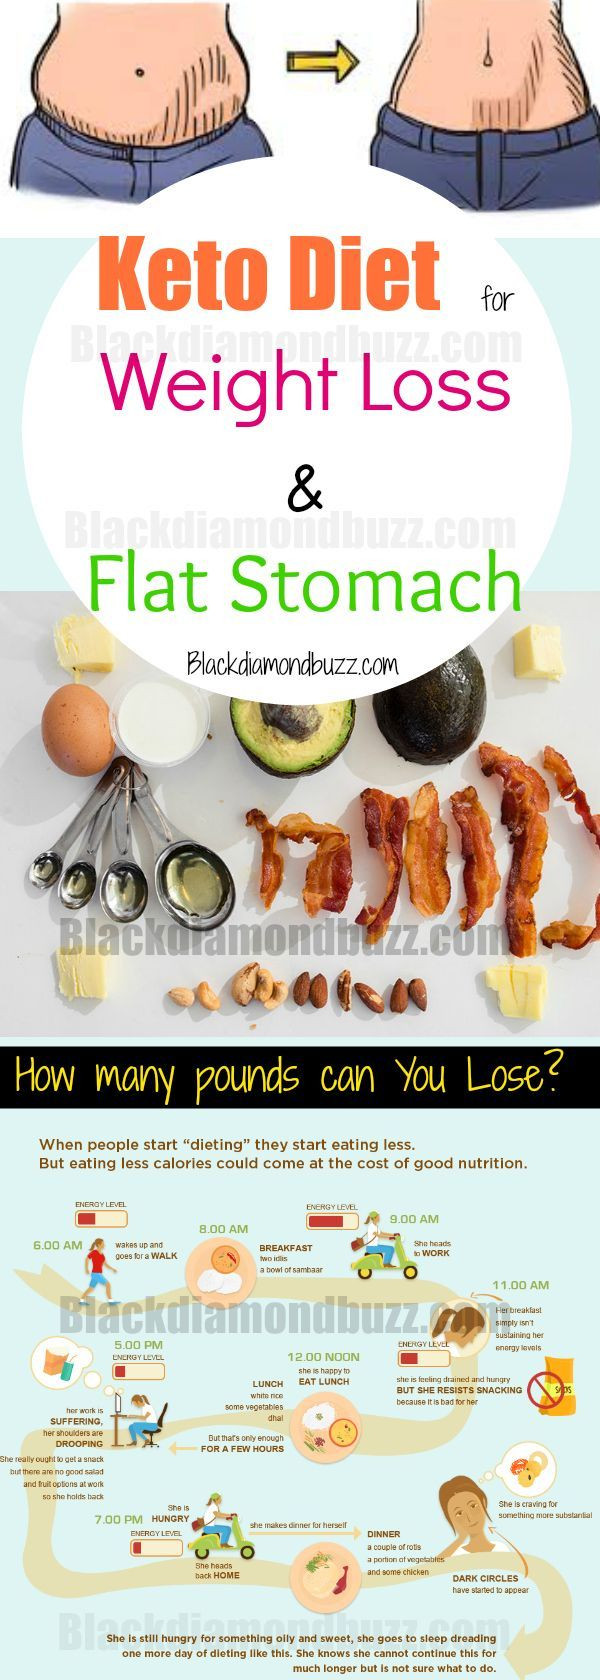 Average Weight Loss On Keto Diet  best Home Reme s Health Allergy s & much more